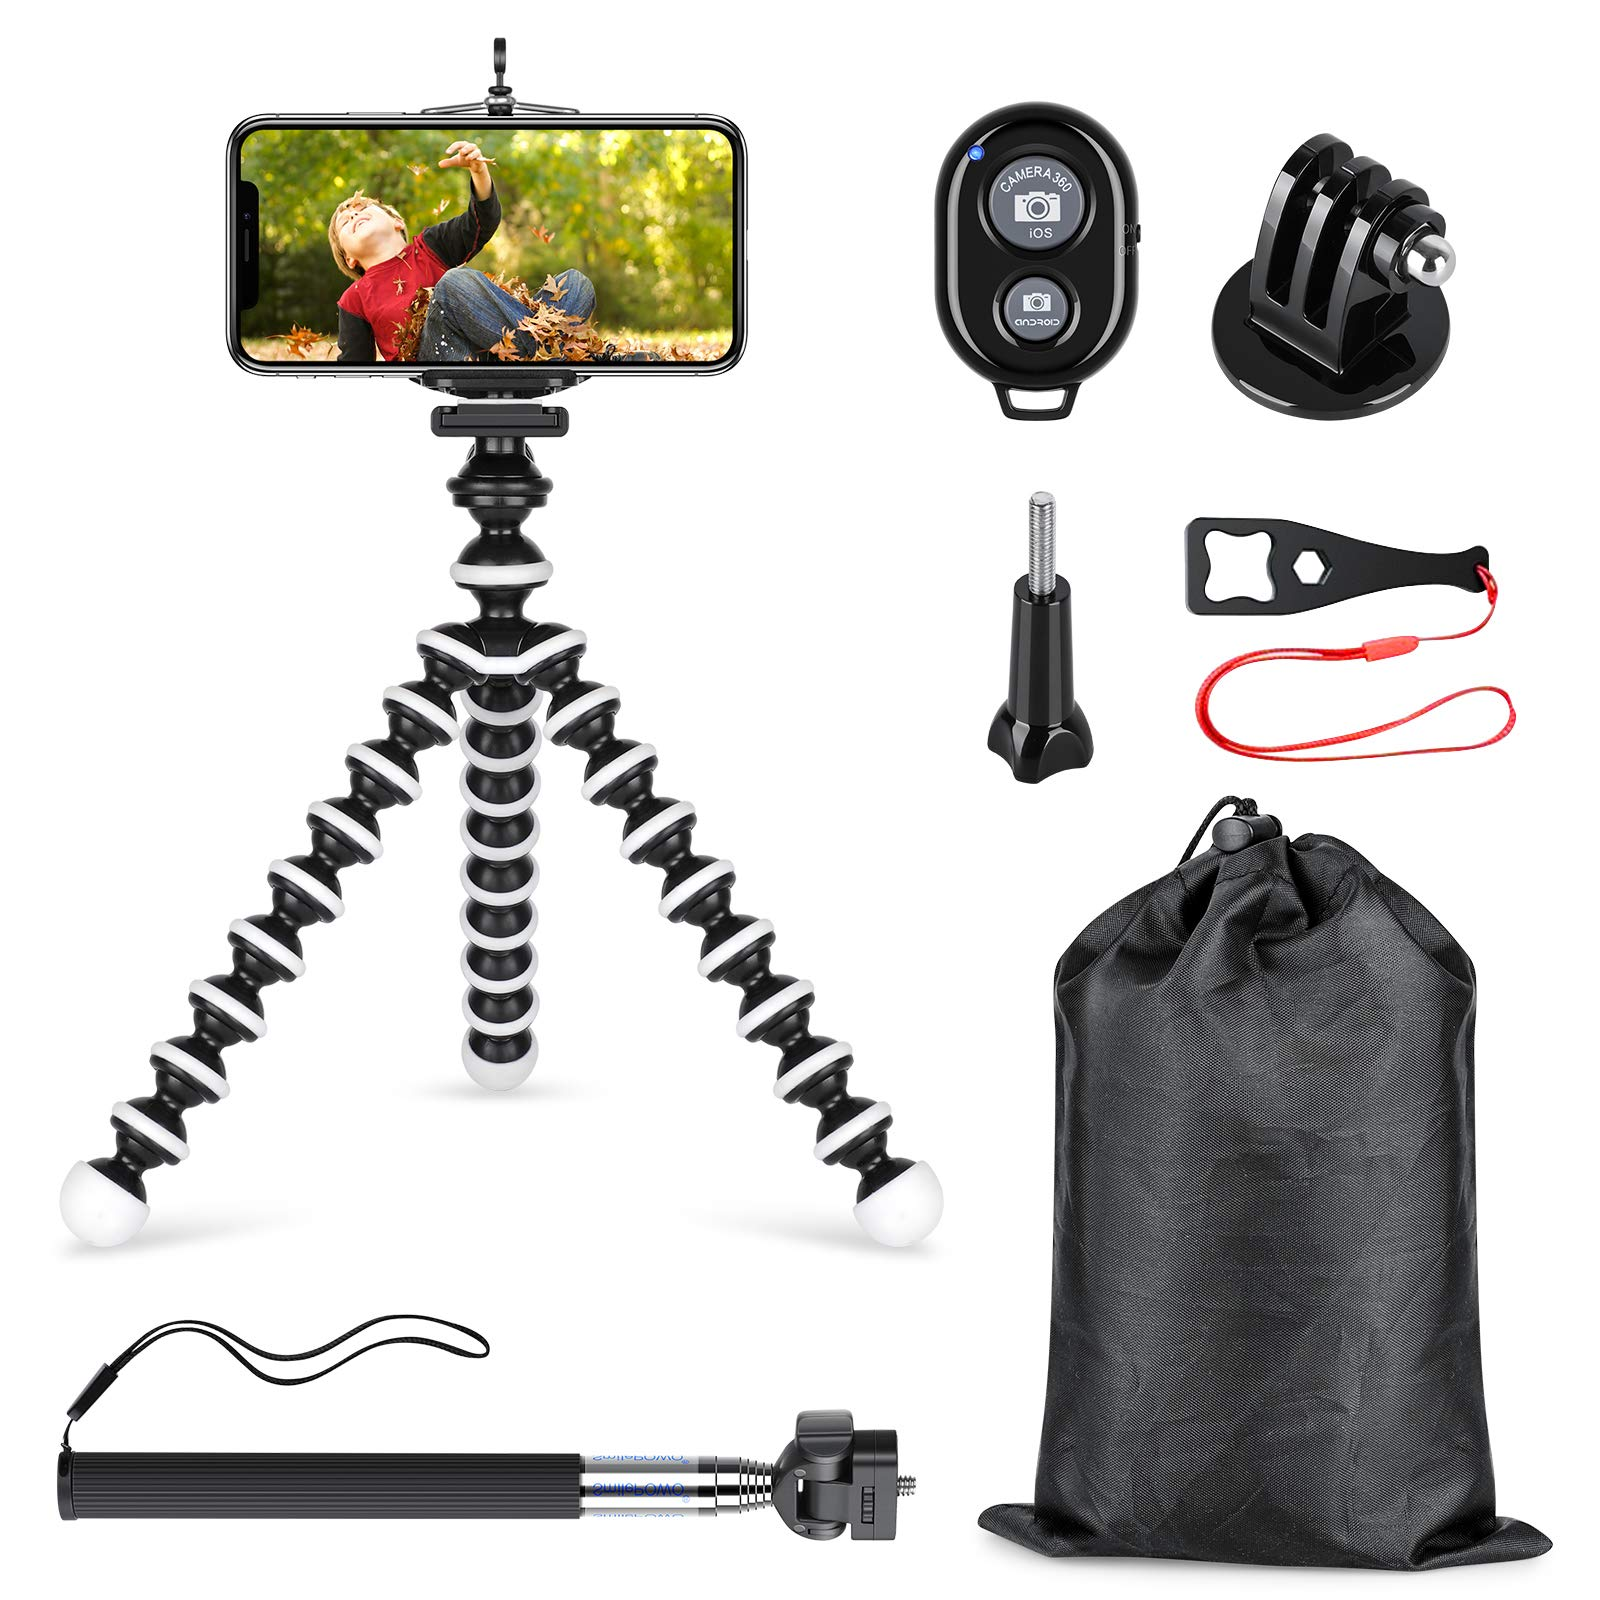 SmilePowo Phone Tripod and Selfie Stick Kit with Shutter Remote Control and Universal Adapter for iPhone, Android Phone,GoPro Hero Camera and Other Sports Action Camera(with Medium Tripod) by SmilePowo